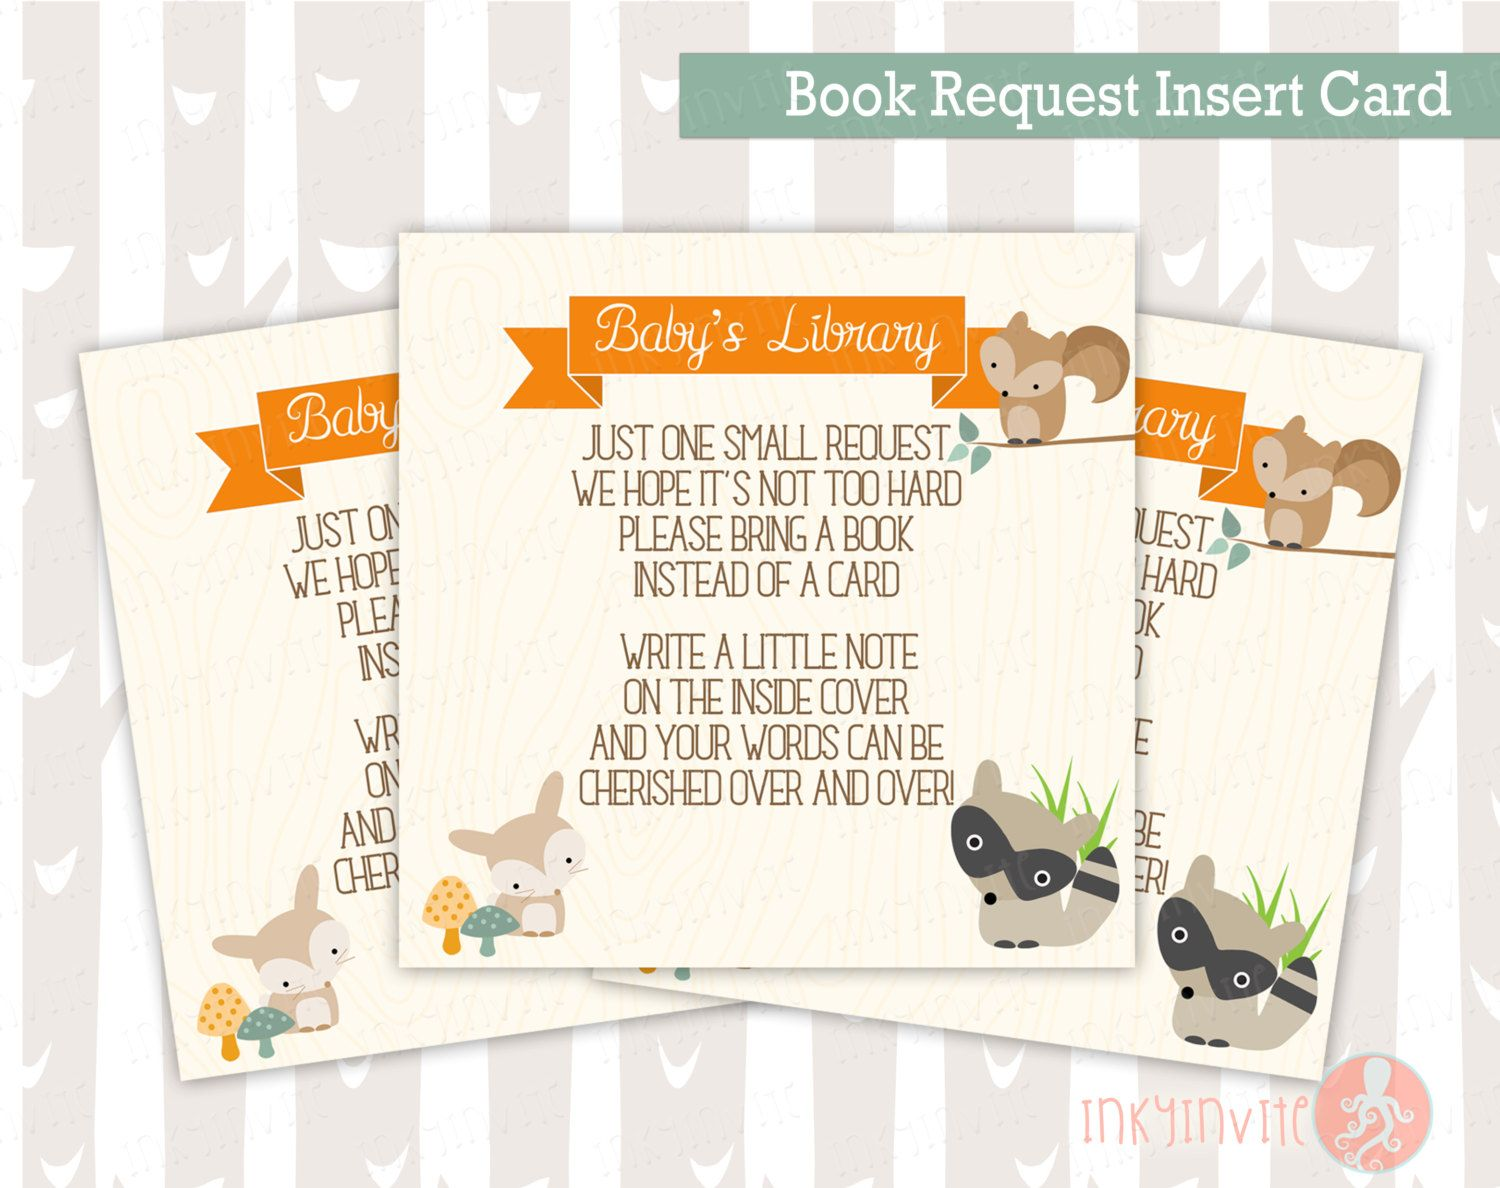 #BabyShowerInvitation Baby Shower Book Request Insert Card | Sweet Woodland Baby Boy or Girl Woodland Animals | Forest Baby Shower Invitation Add On's Invitation Woodland Forest Animals Forest Baby Shower Baby Deer Little Deer party Fox Baby Shower Woodland baby invite Book Request Card bring a book insert card woodland baby shower sweet woodland baby 3.00 USD InkyInvite